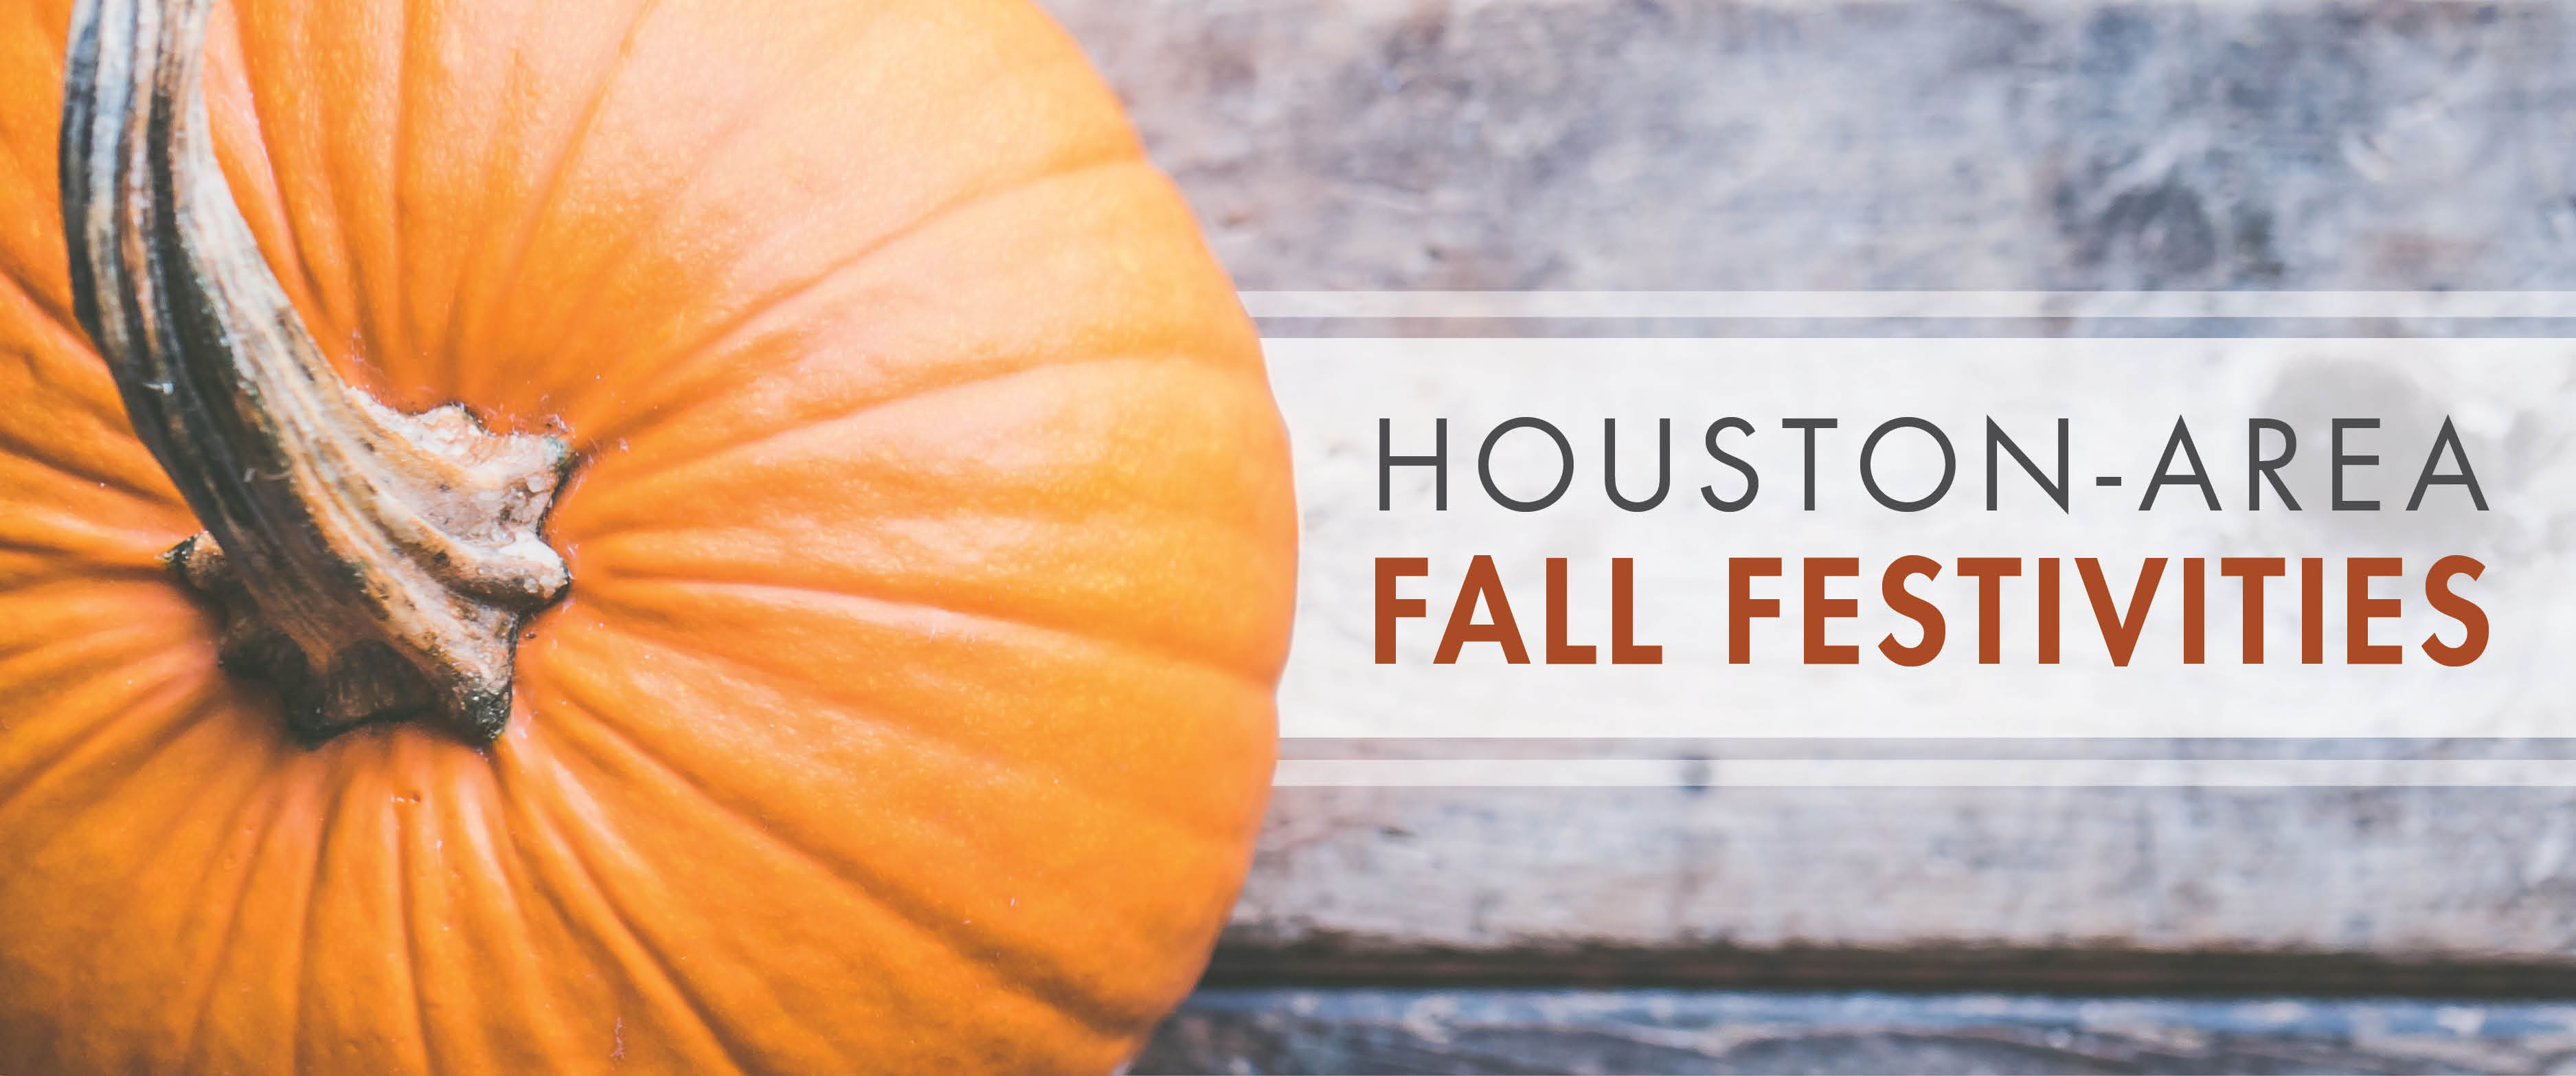 Houston-Area Fall Festivities